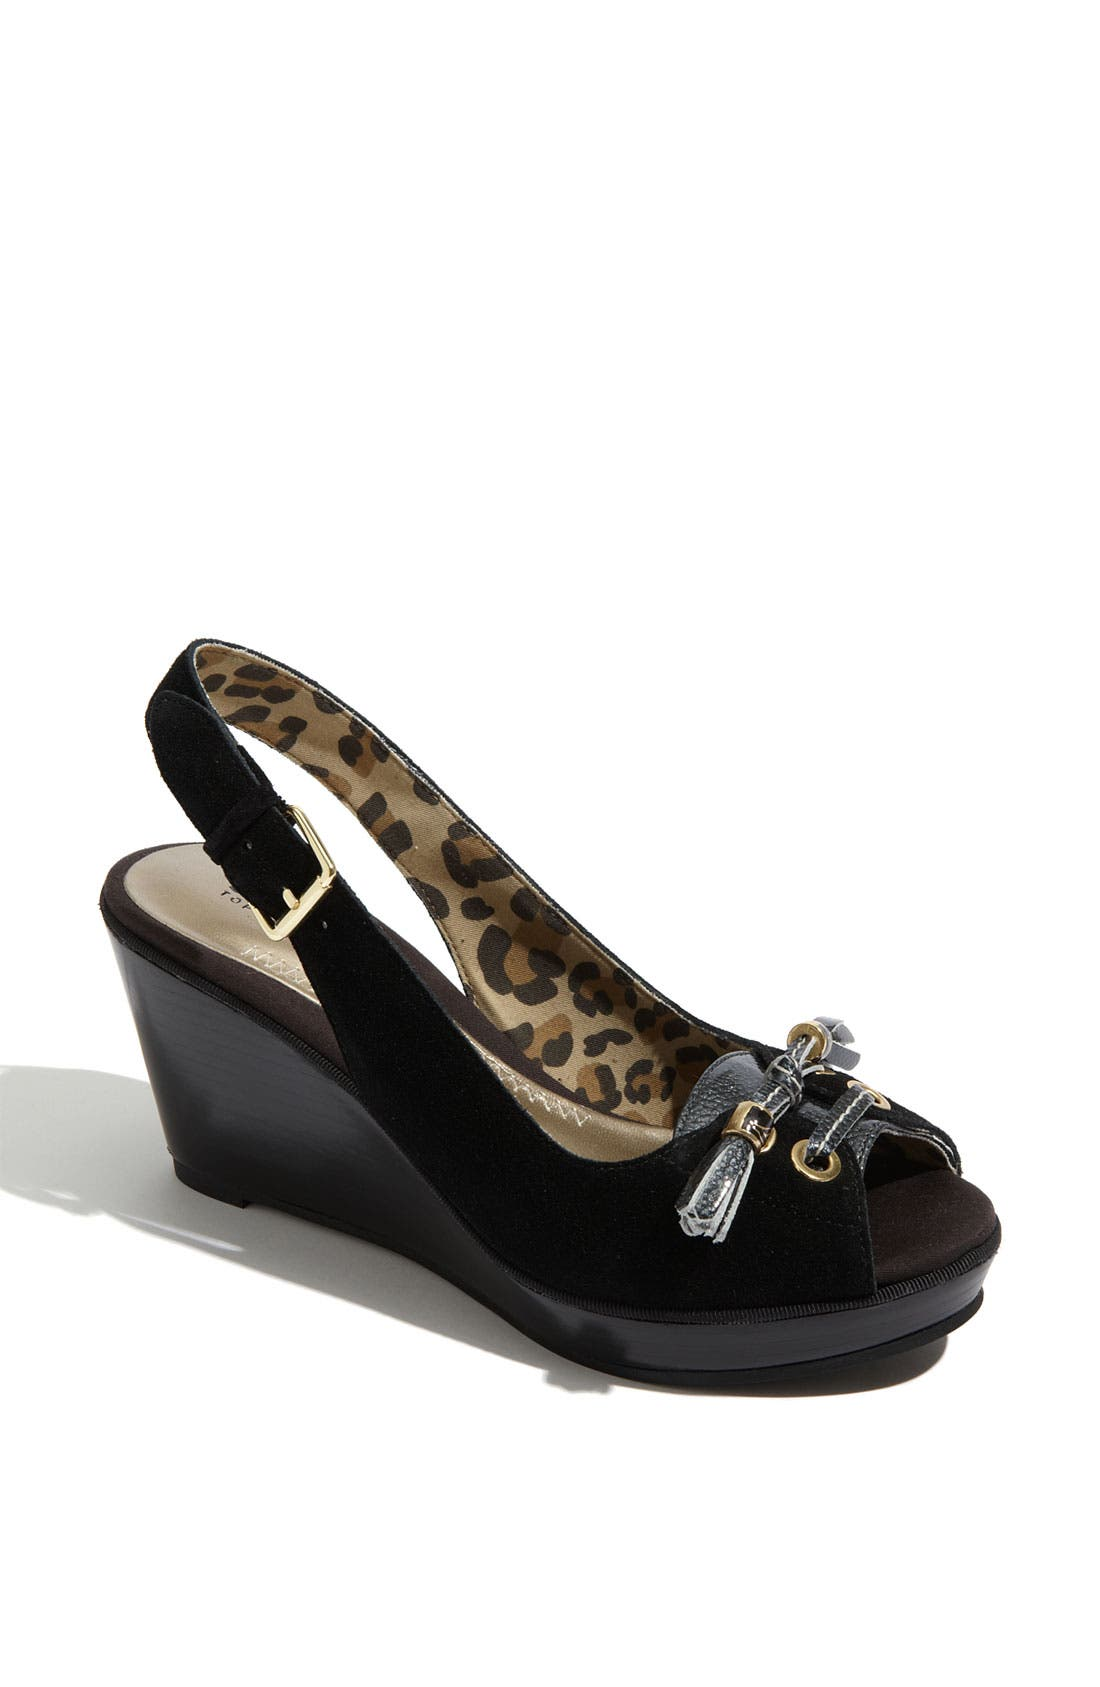 Alternate Image 1 Selected - Sperry Top-Sider® 'Cypress' Wedge Slingback